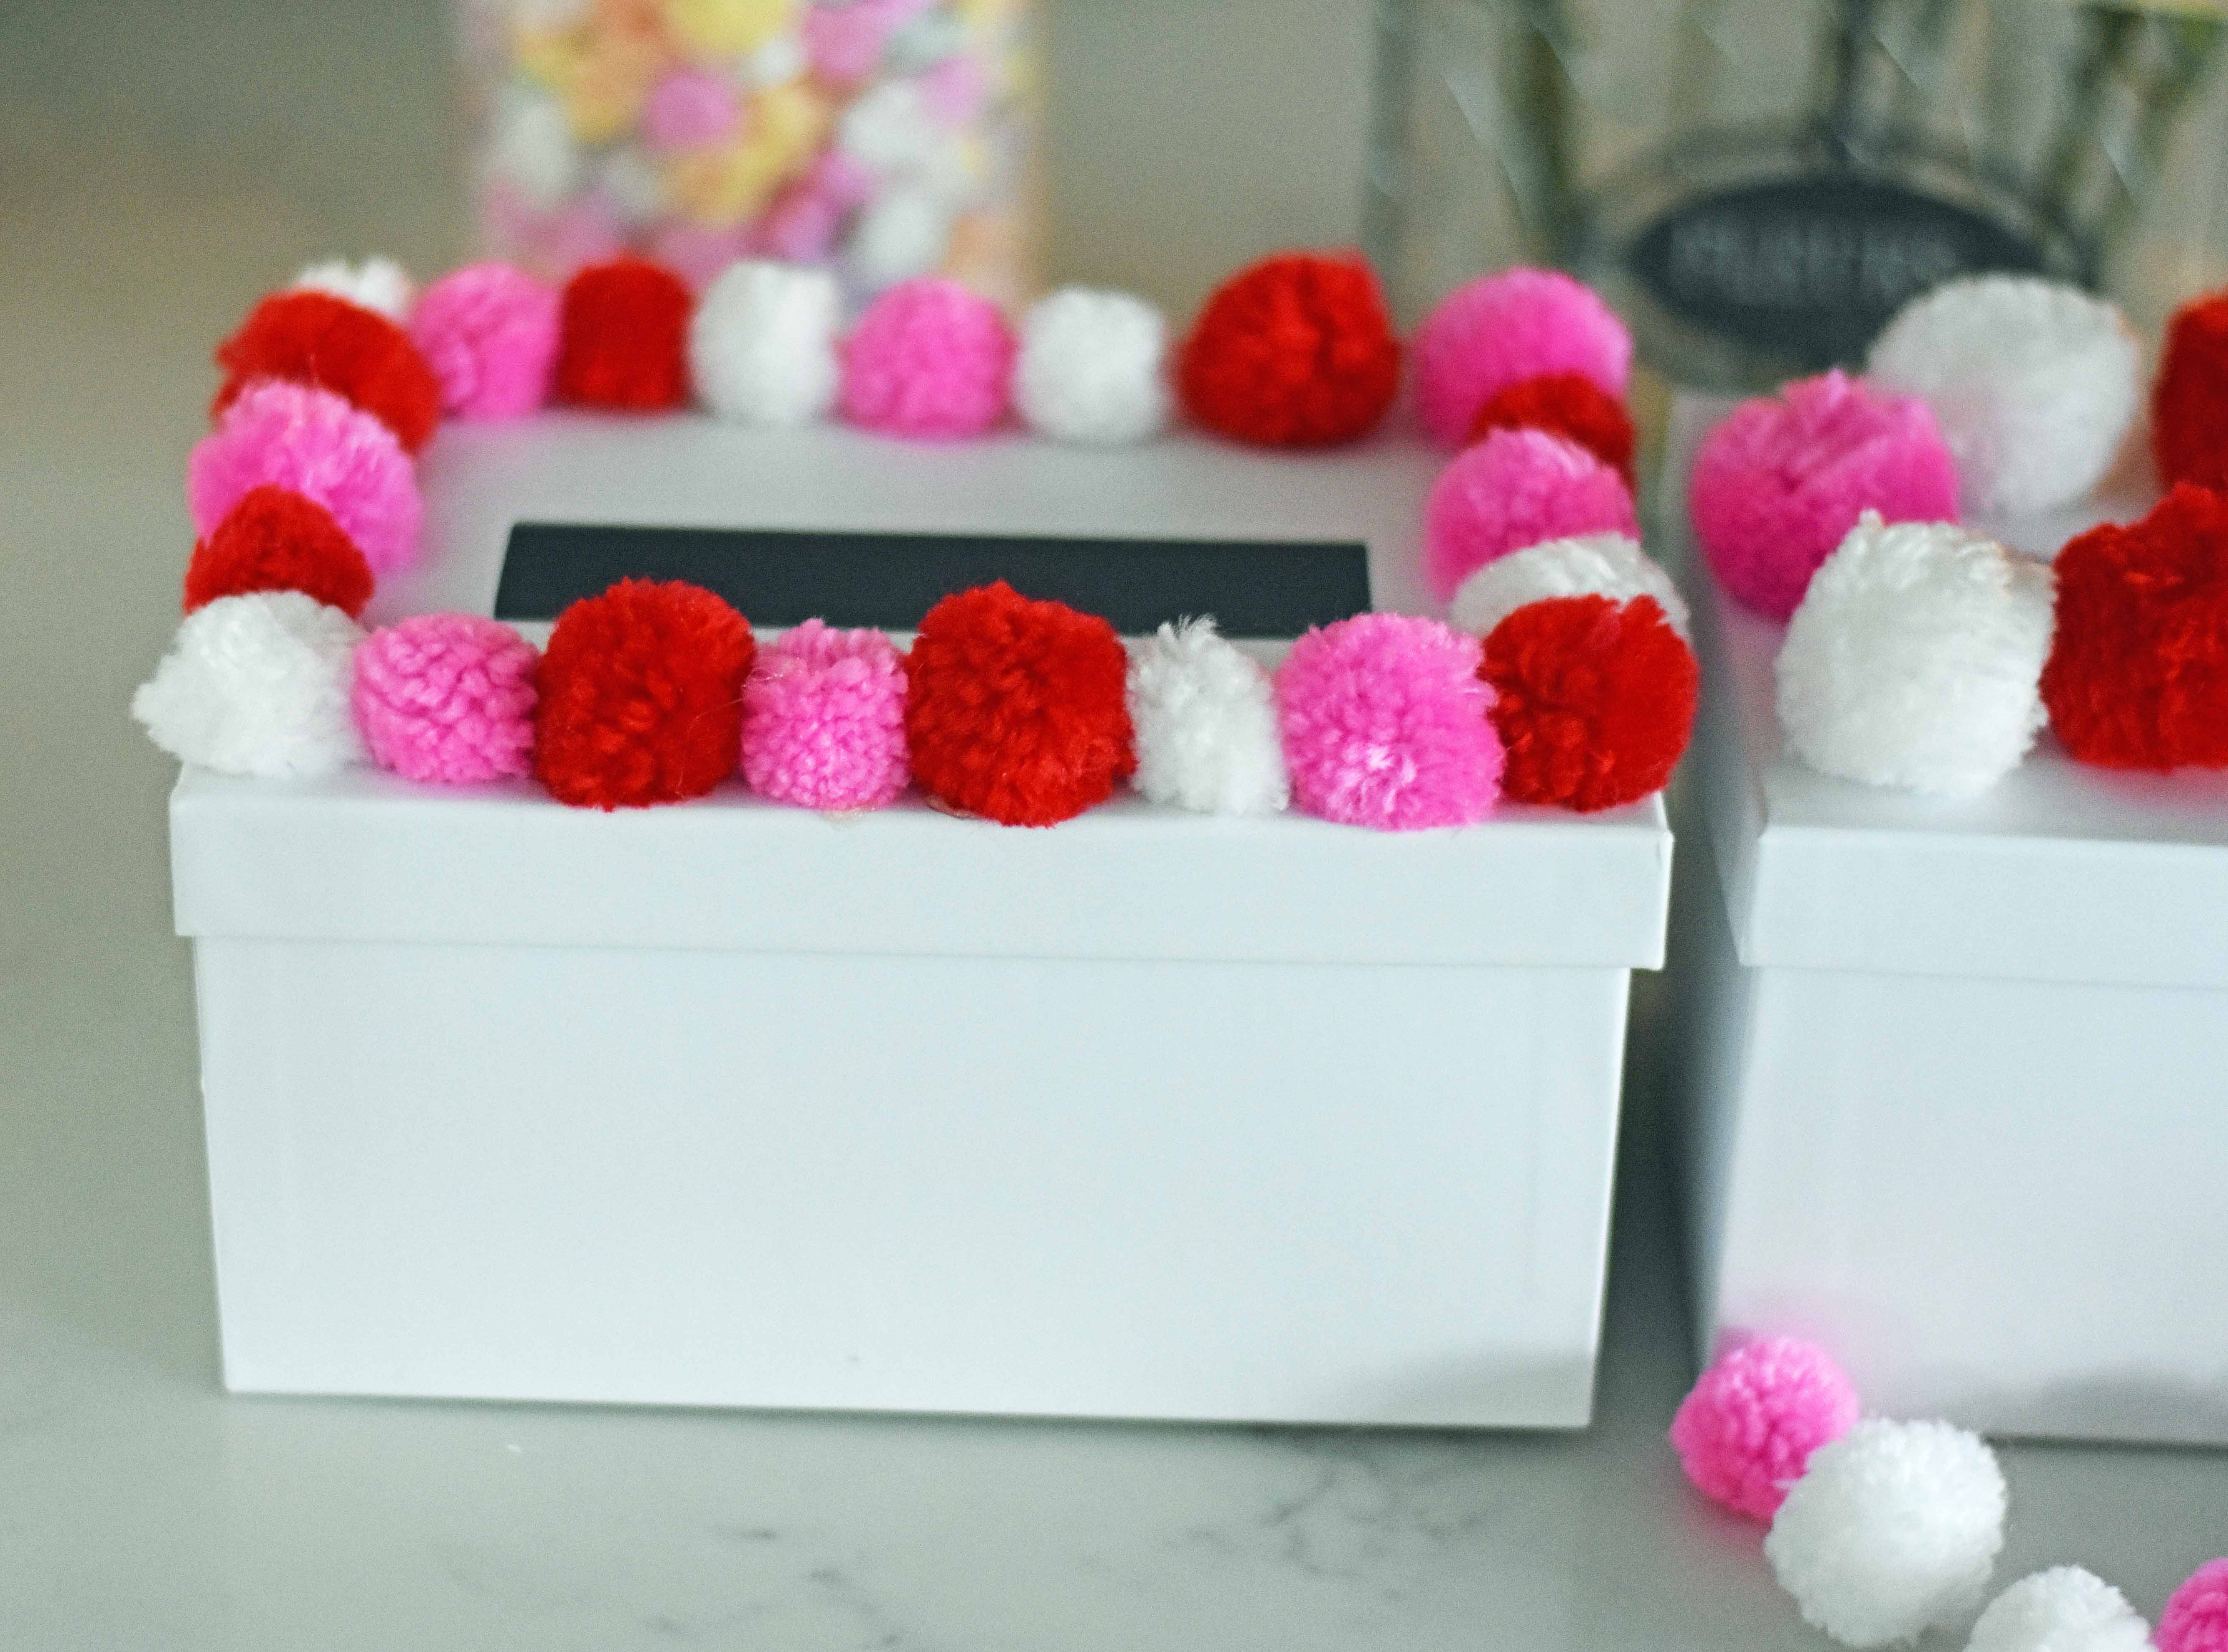 How to decorate Valentine's Day boxes with pom poms. Pom Poms Valentine's Day boxes.  Easy Valentine's Day boxes for school. Valentine's Day decorating ideas. www.modernhoney.com